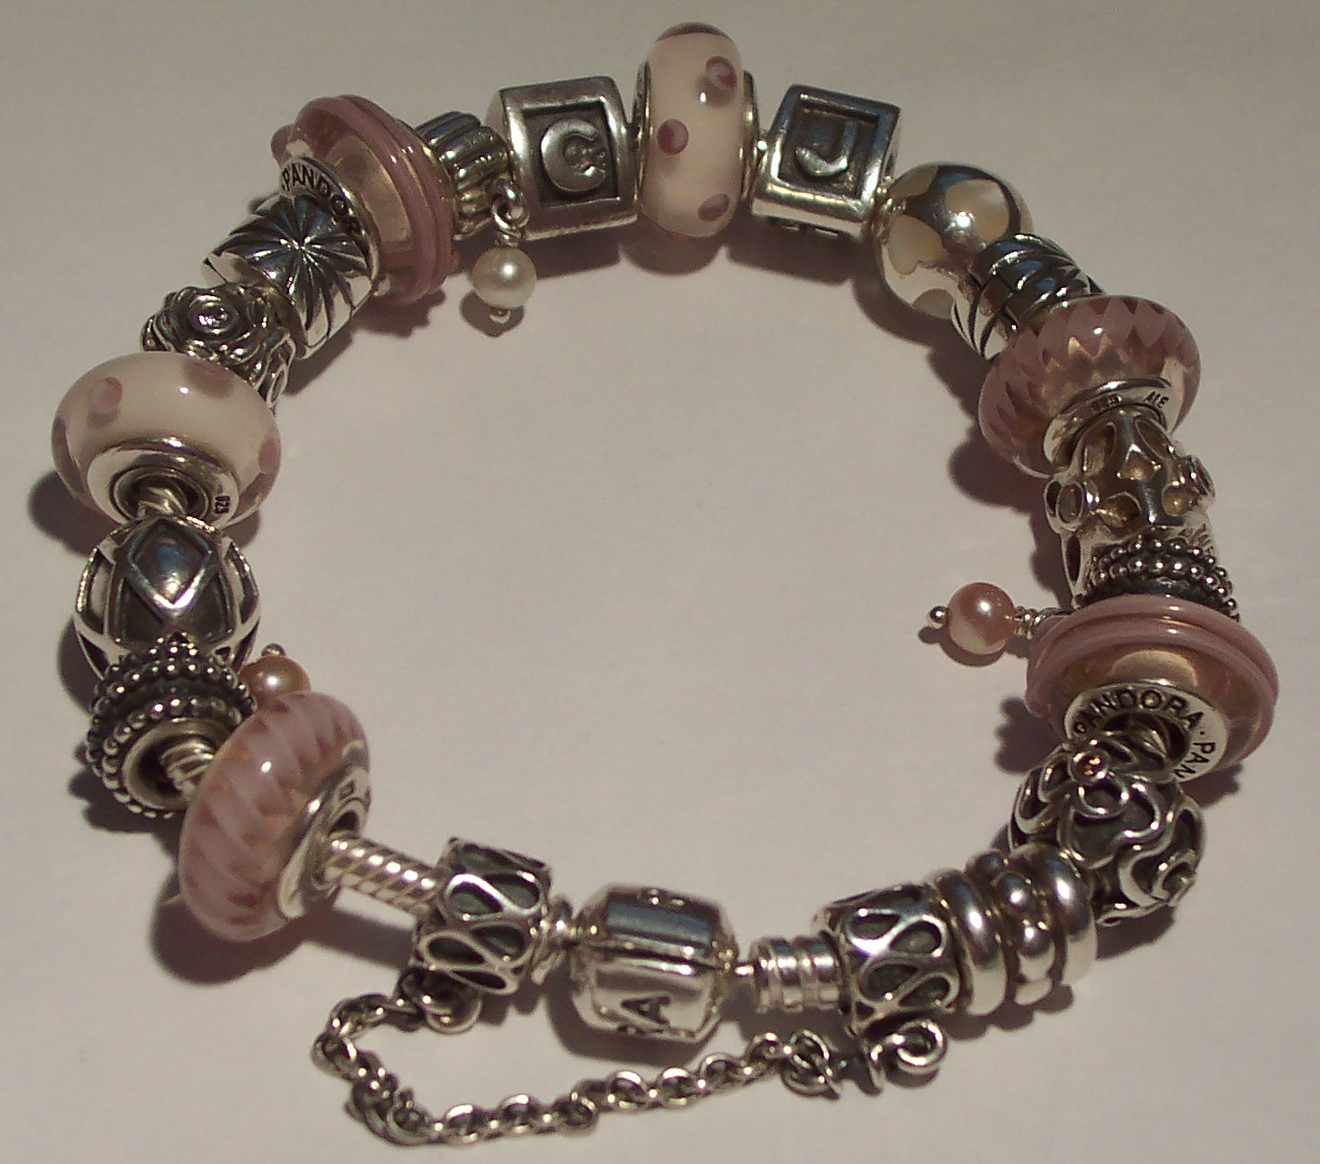 Popular Charm Bracelets 2: Charm Bracelets Are Best For Celebrating Your Memories